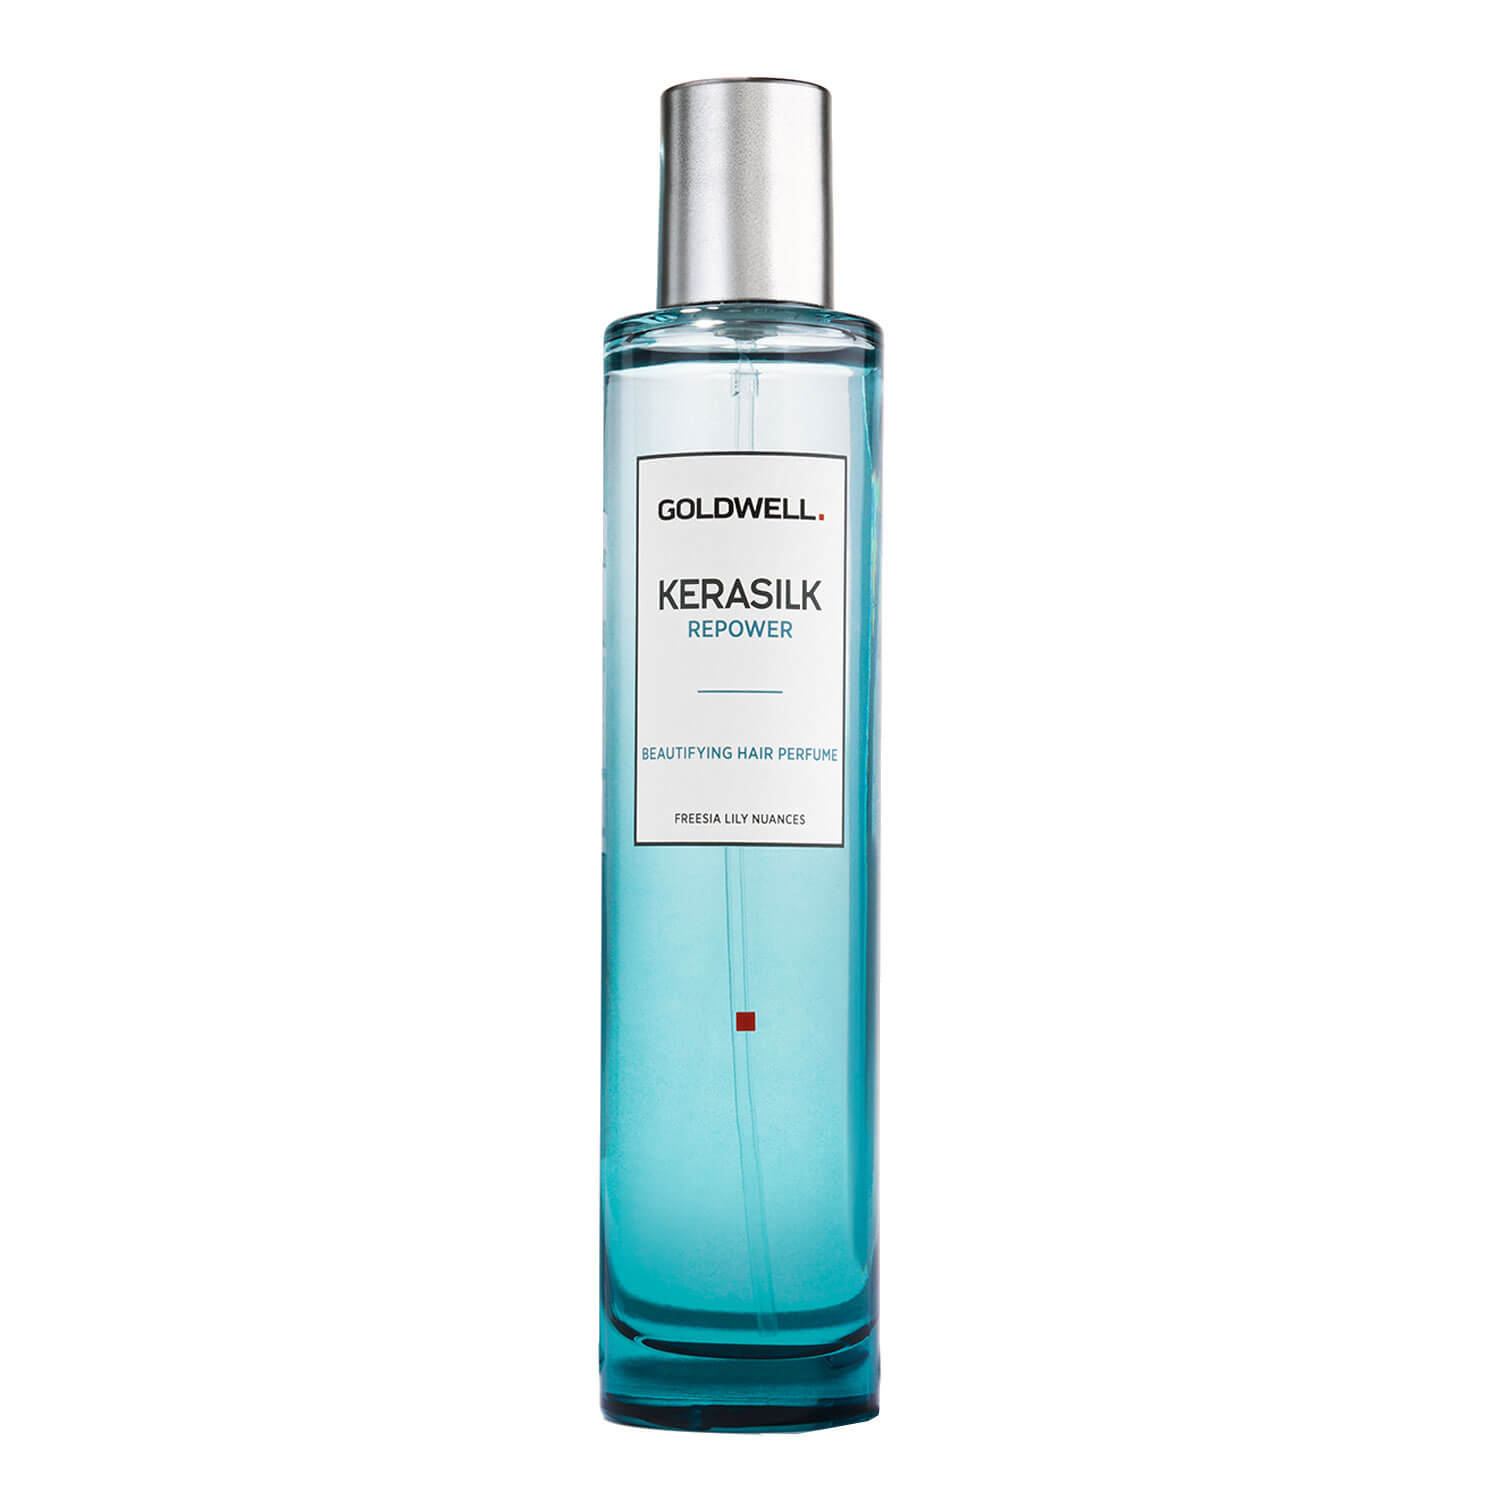 Kerasilk Repower Volume - Hair Perfume